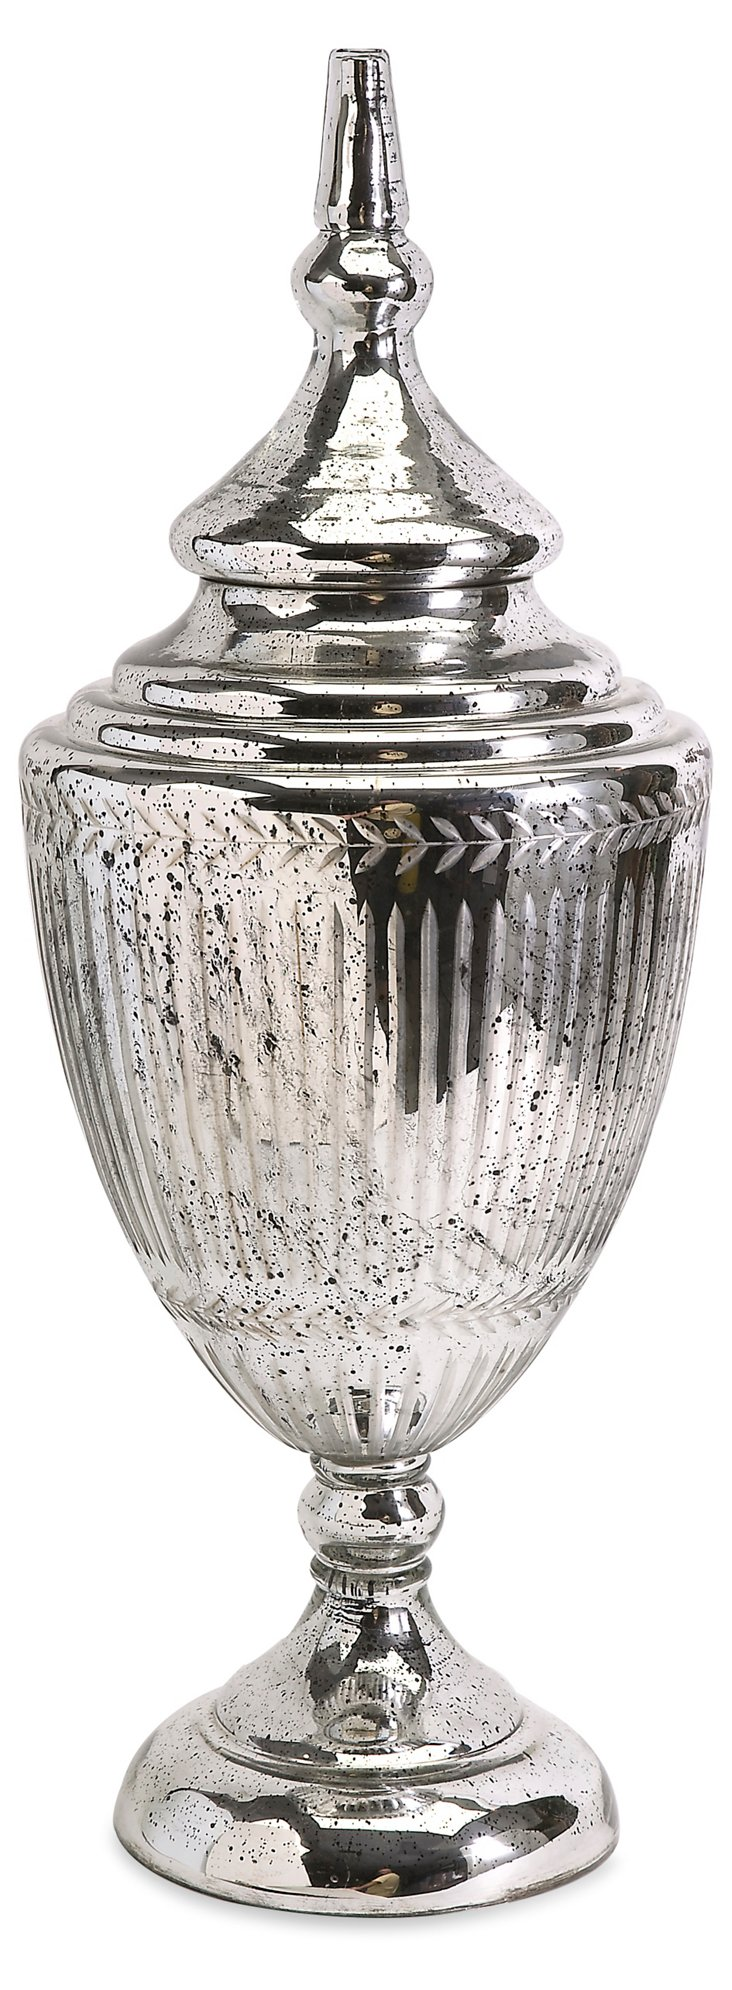 "29"" Silvered-Glass Urn, Silver"